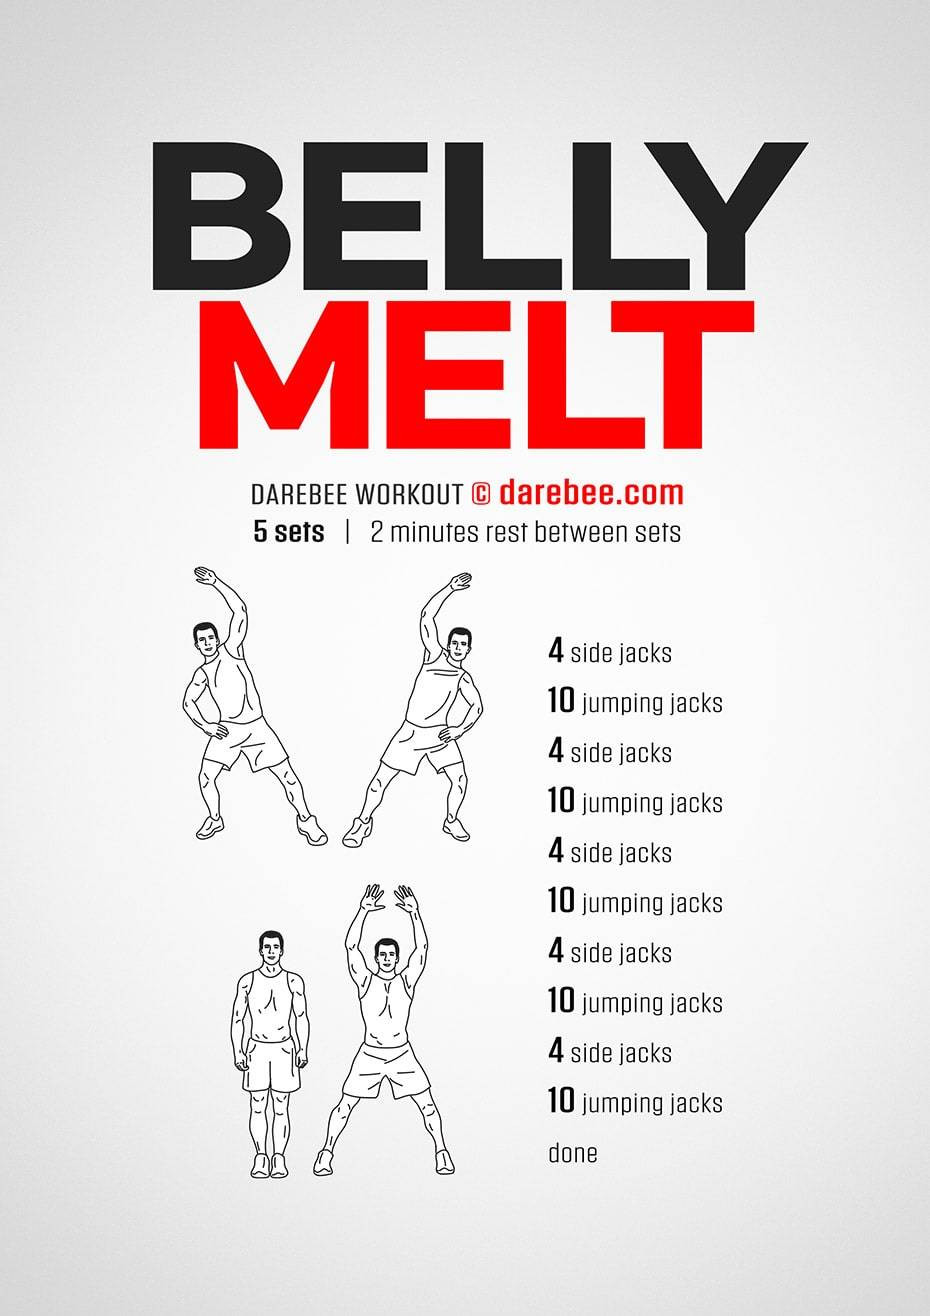 Fat Burning Workout For Men At Home Losing Weight  51 Fat Burning Workouts That Fit Into ANY Busy Schedule